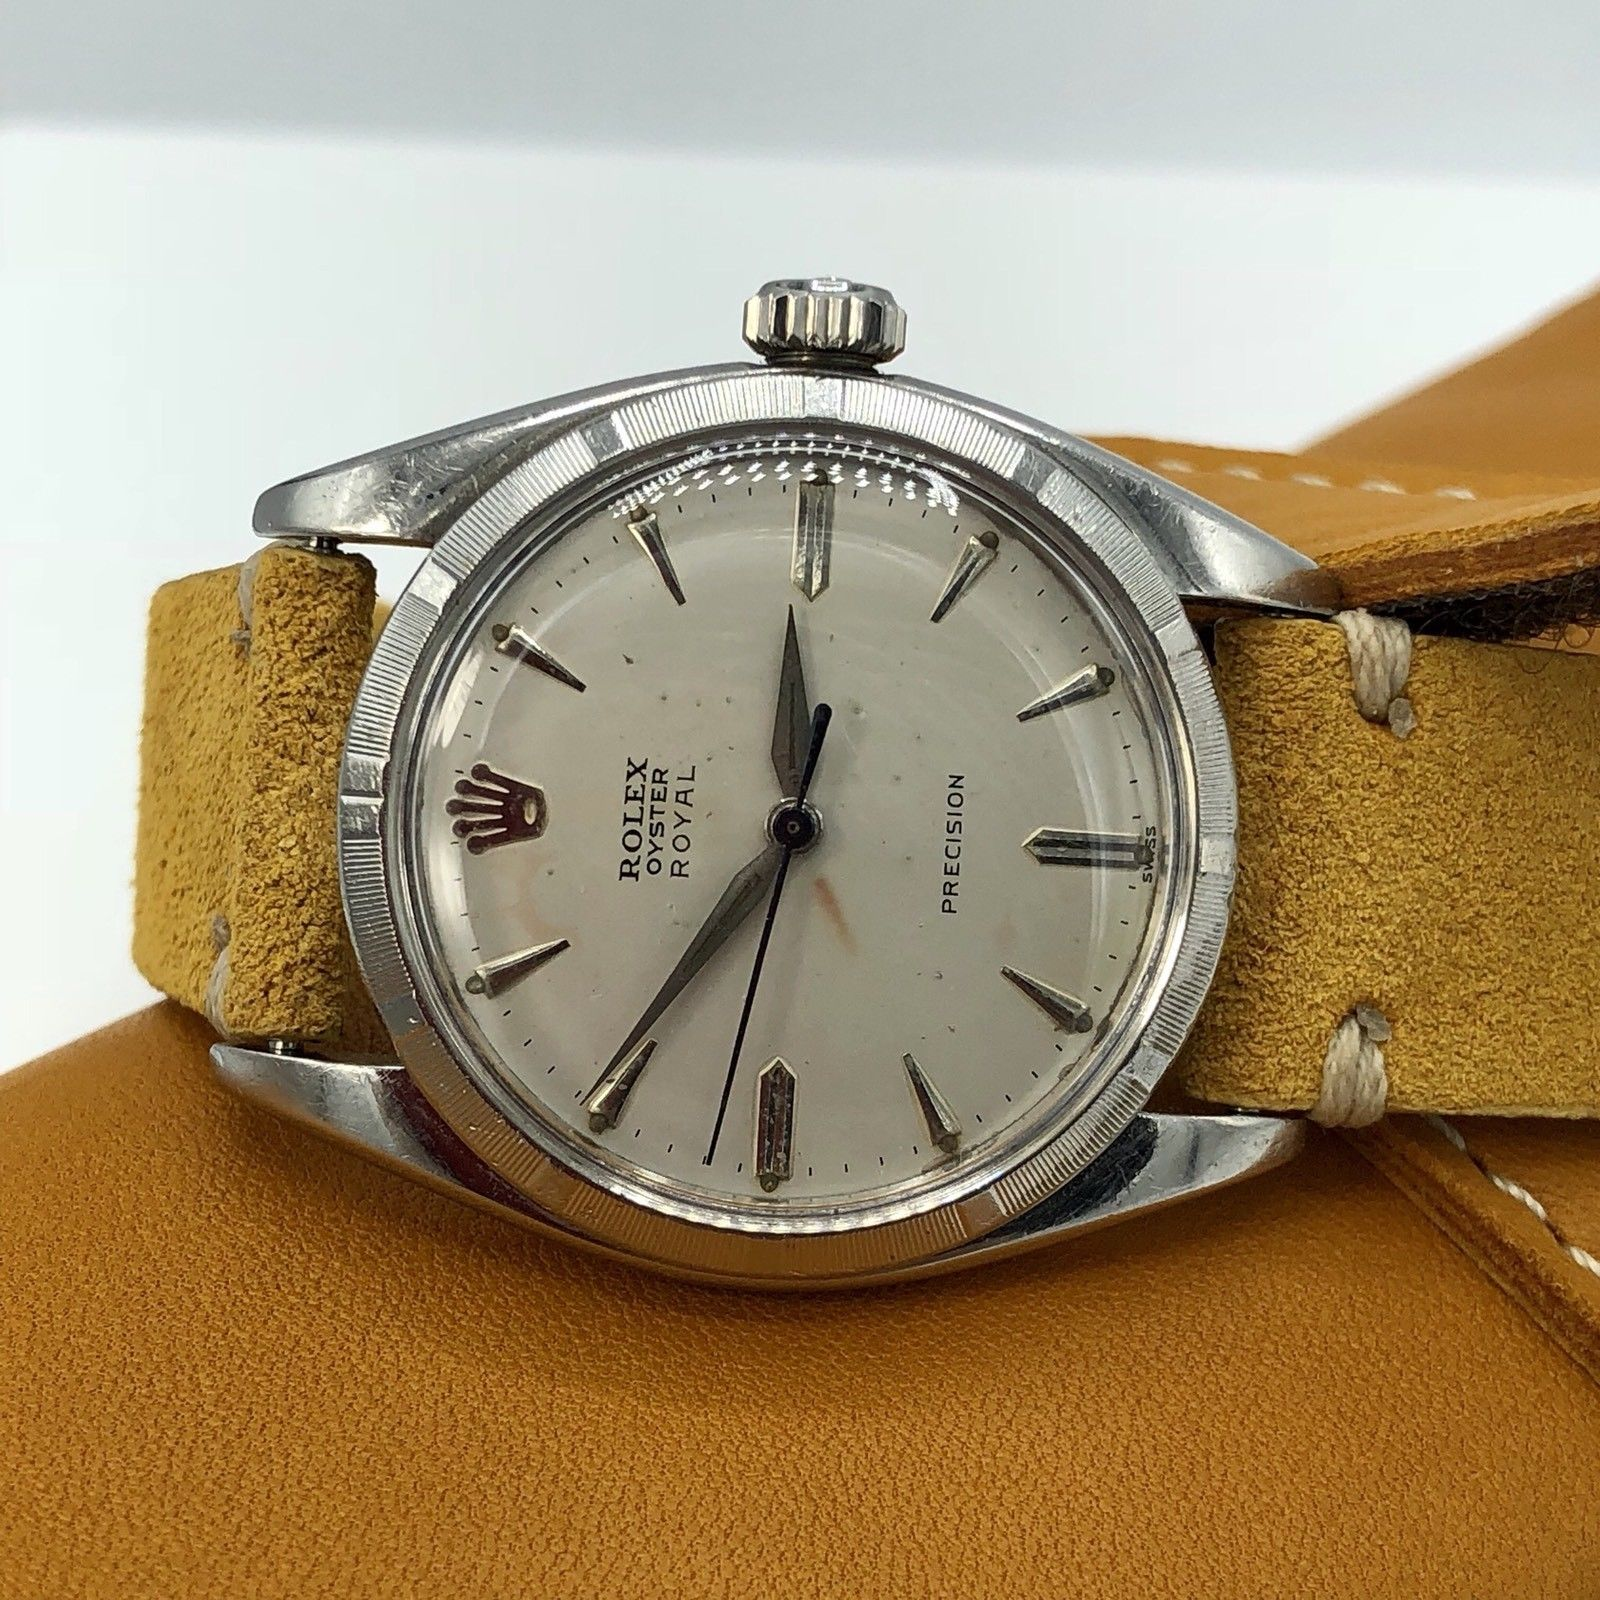 vintage rolex oyster precision royal 6427 cal 1215 manual wind 1961 rh awadwatches com Rolex Watches for Men rolex daytona watch user manual